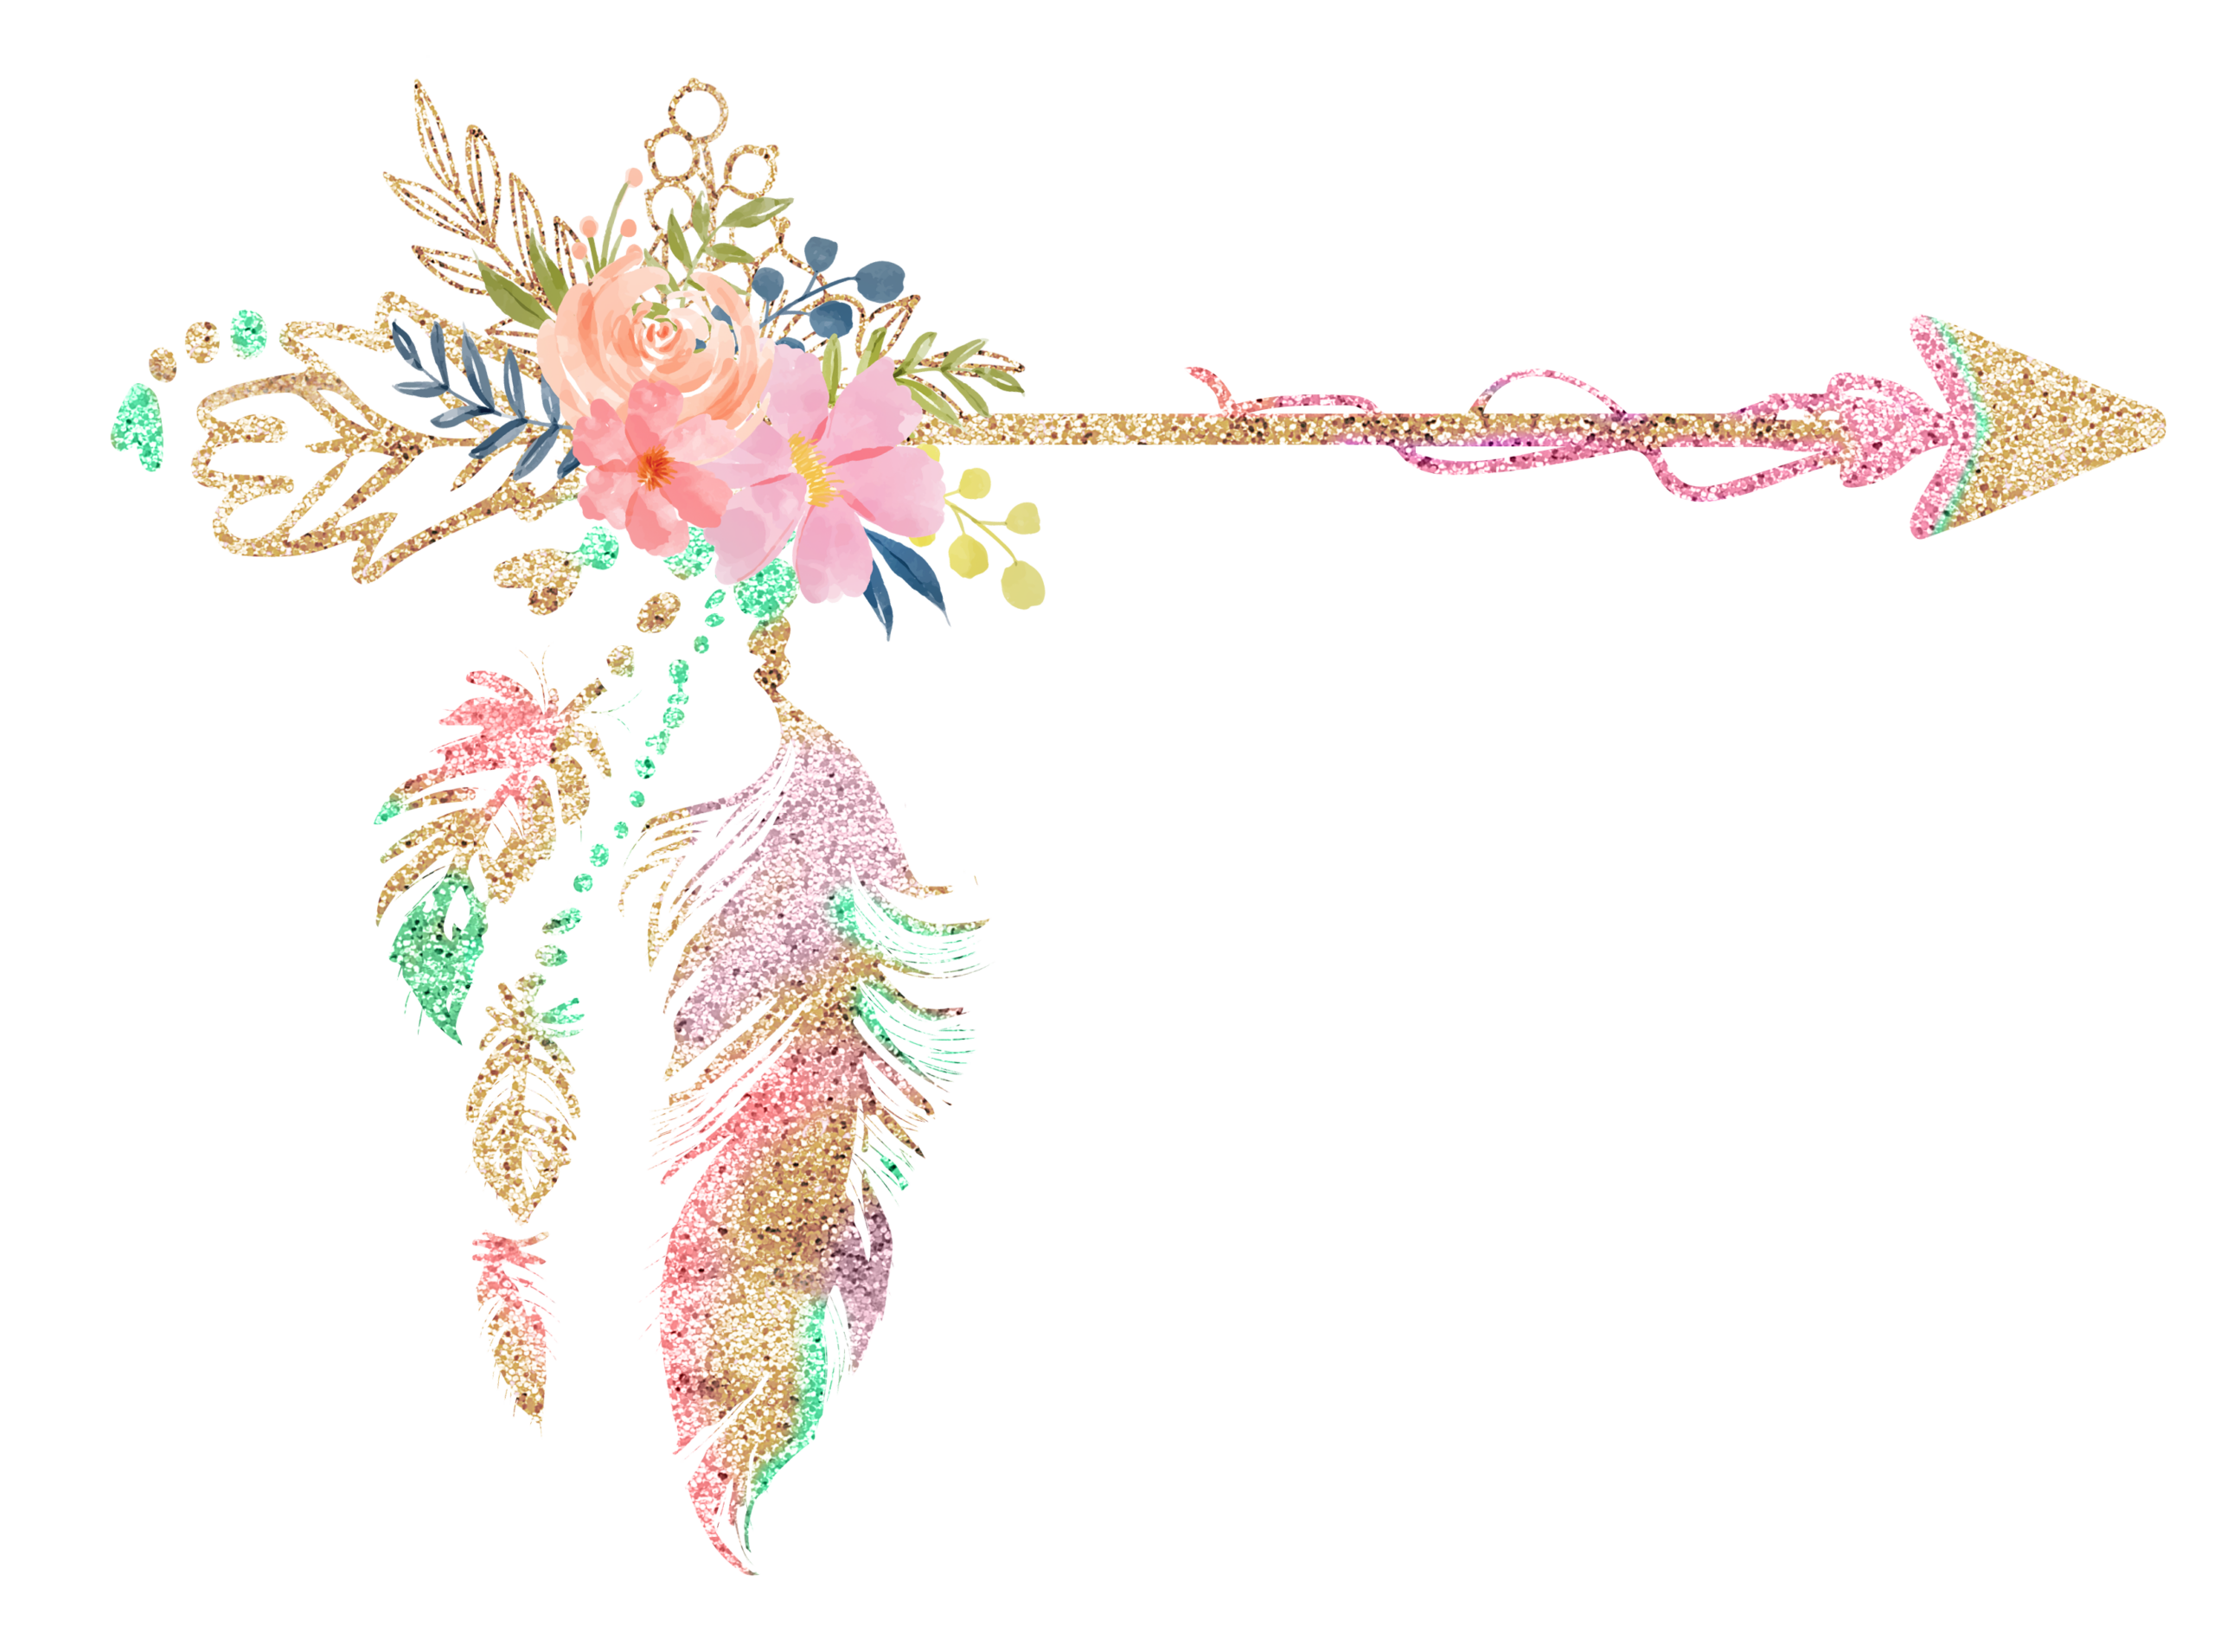 Cute Love Wallpaper Free Download Free Boho Floral Arrow Clipart Free Pretty Things For You